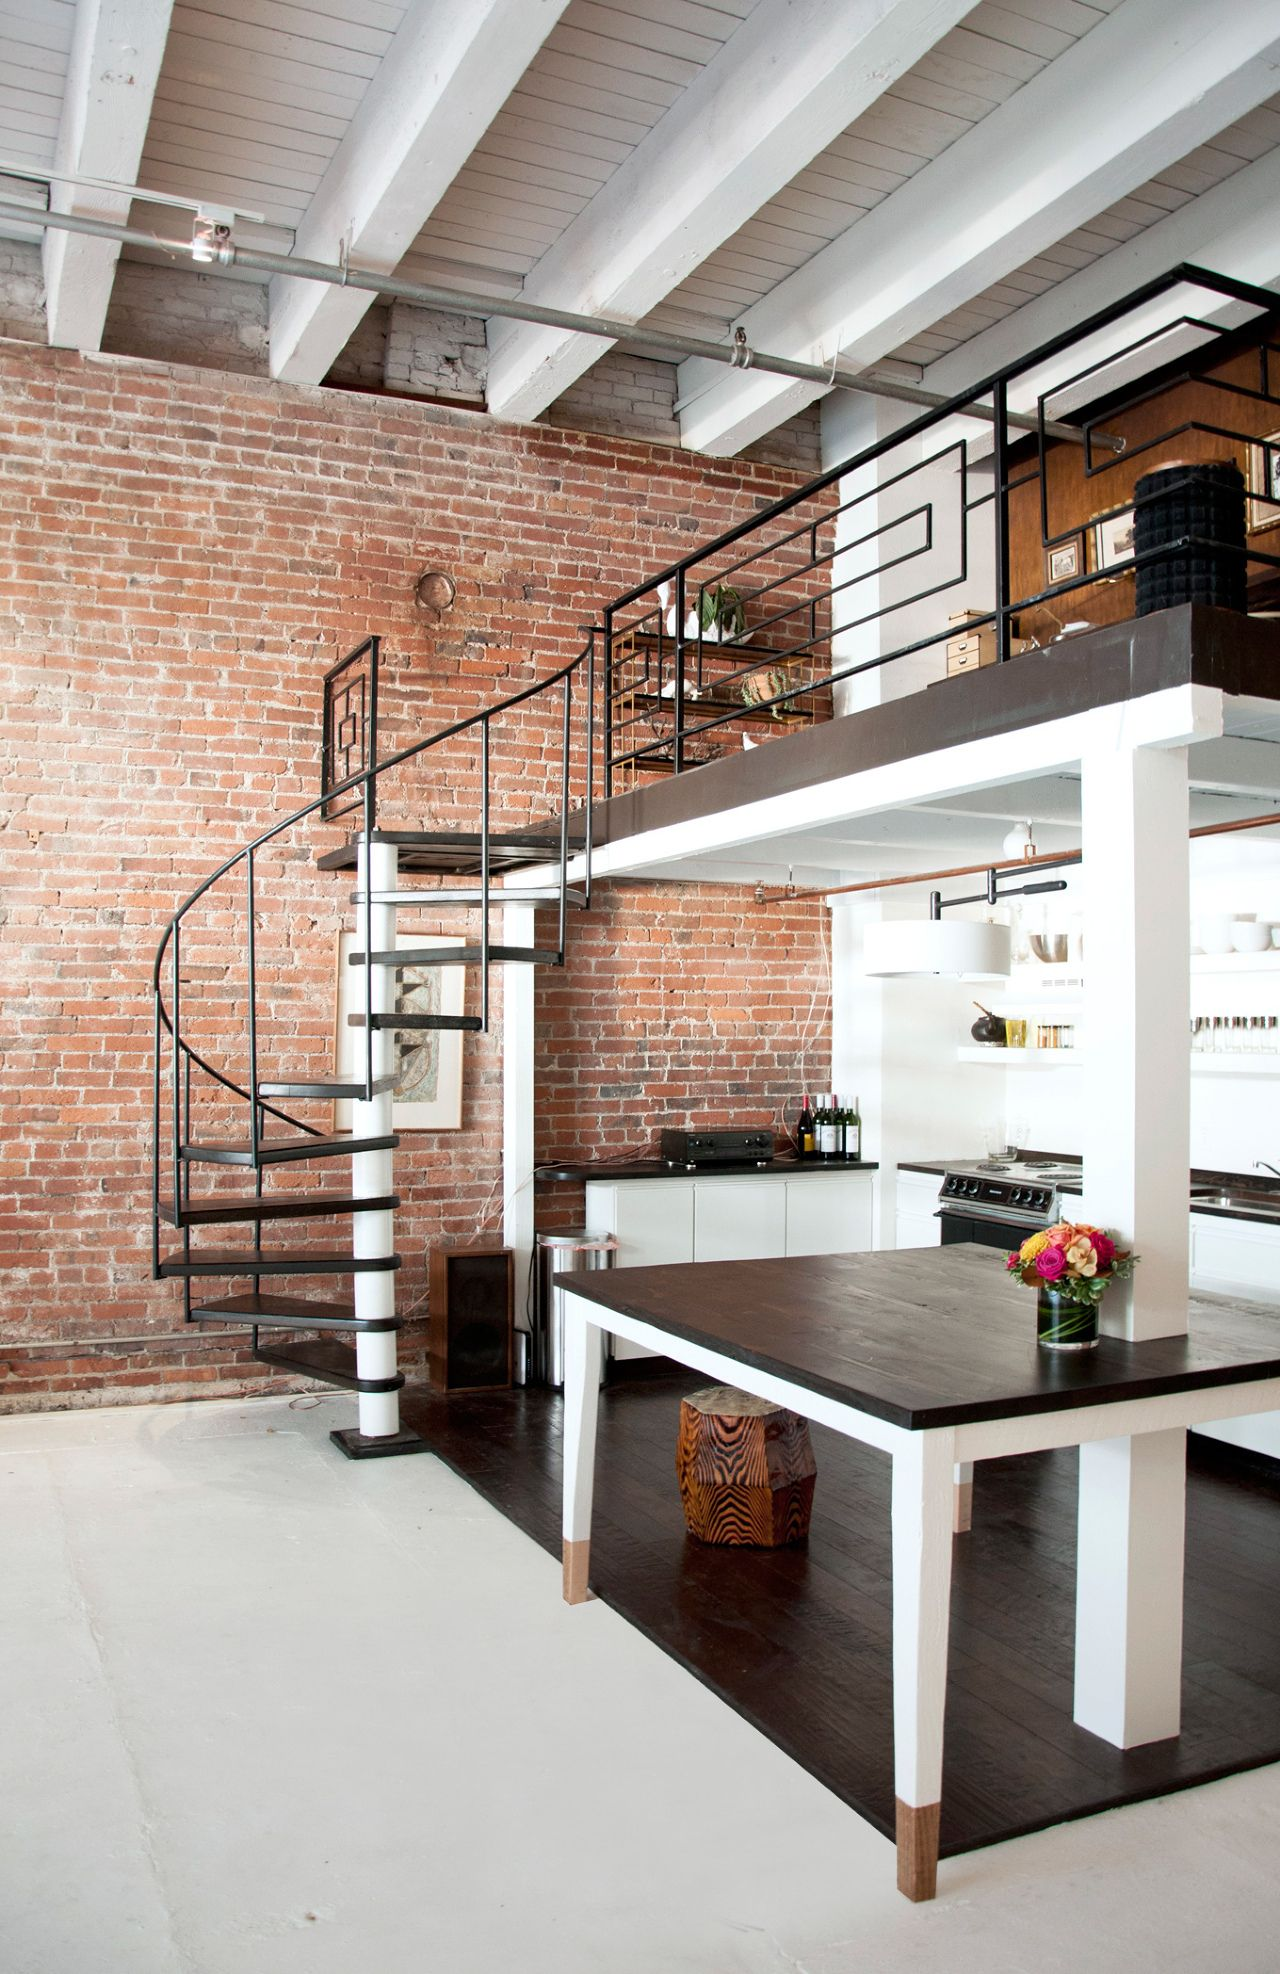 Lofty kitchen  Trap  Pinterest  Mezzanine Industrial and Kitchens